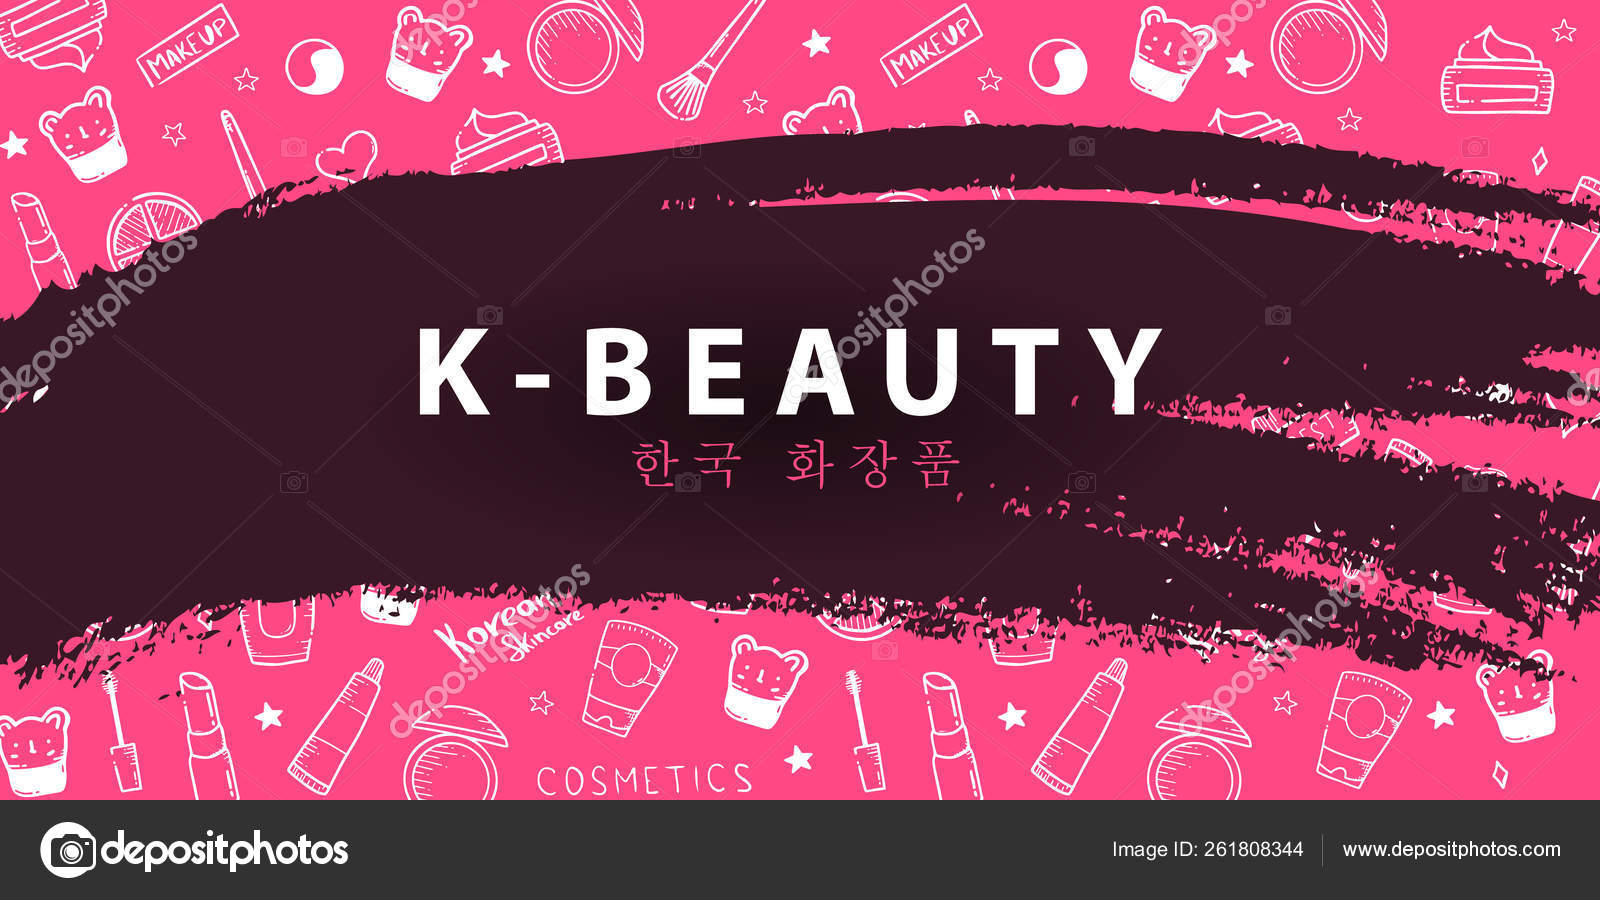 Korean Cosmetics K Beauty Banner With Hand Draw Doodle Background Skincare And Makeup Translation Korean Cosmetics Vector Illustration Stock Vector C Leo Design 261808344